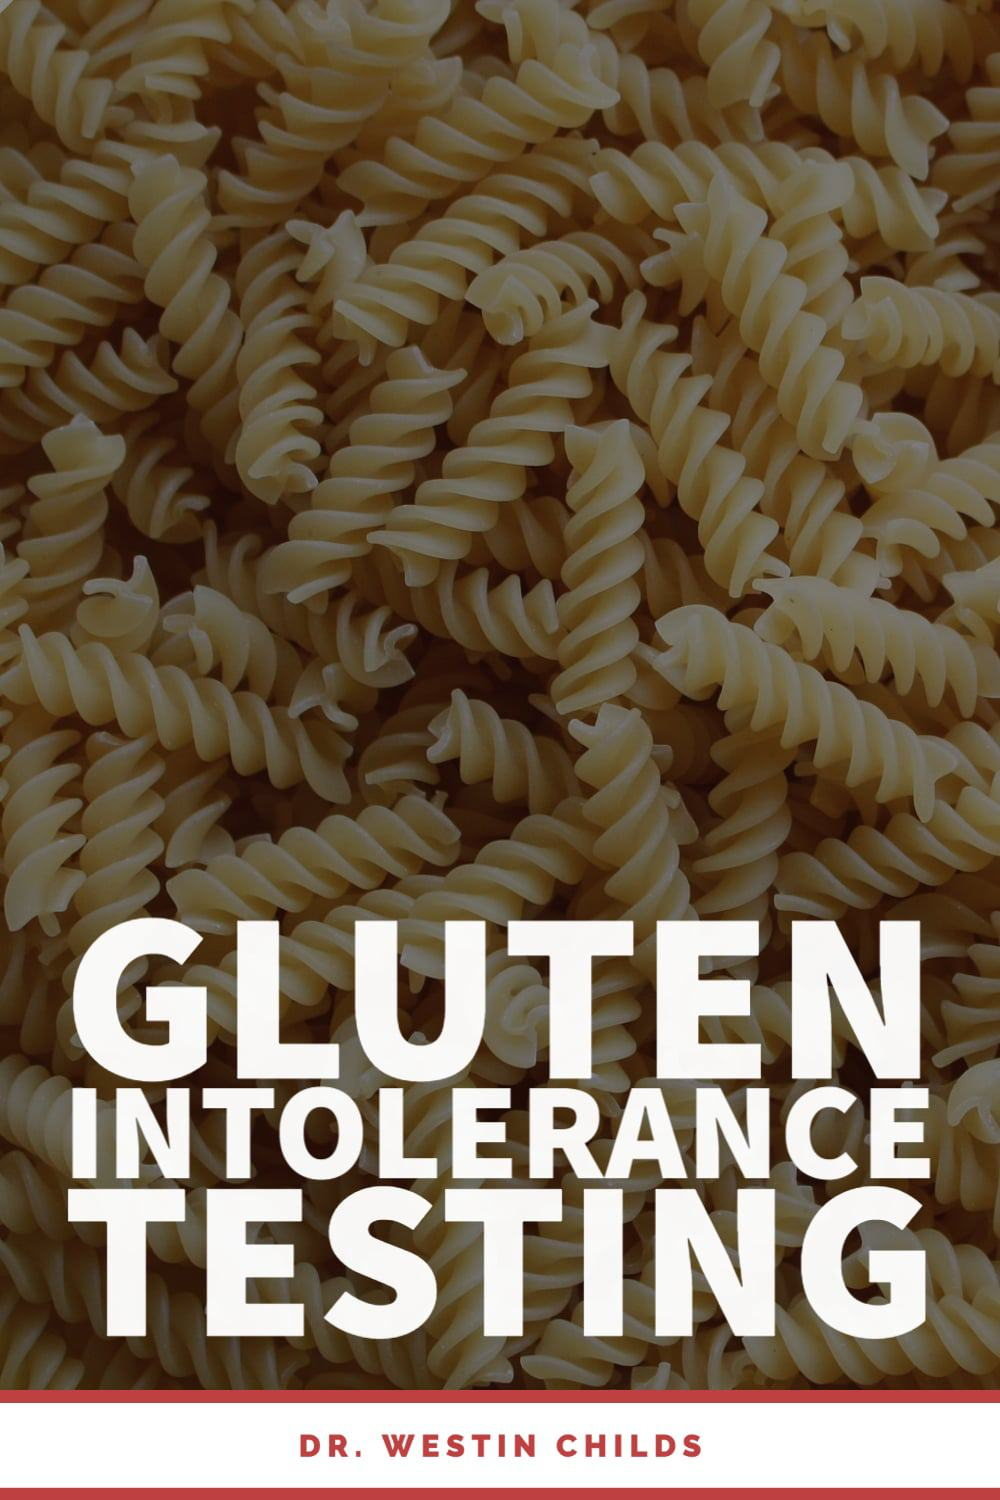 gluten intolerance testing - everything you need to know